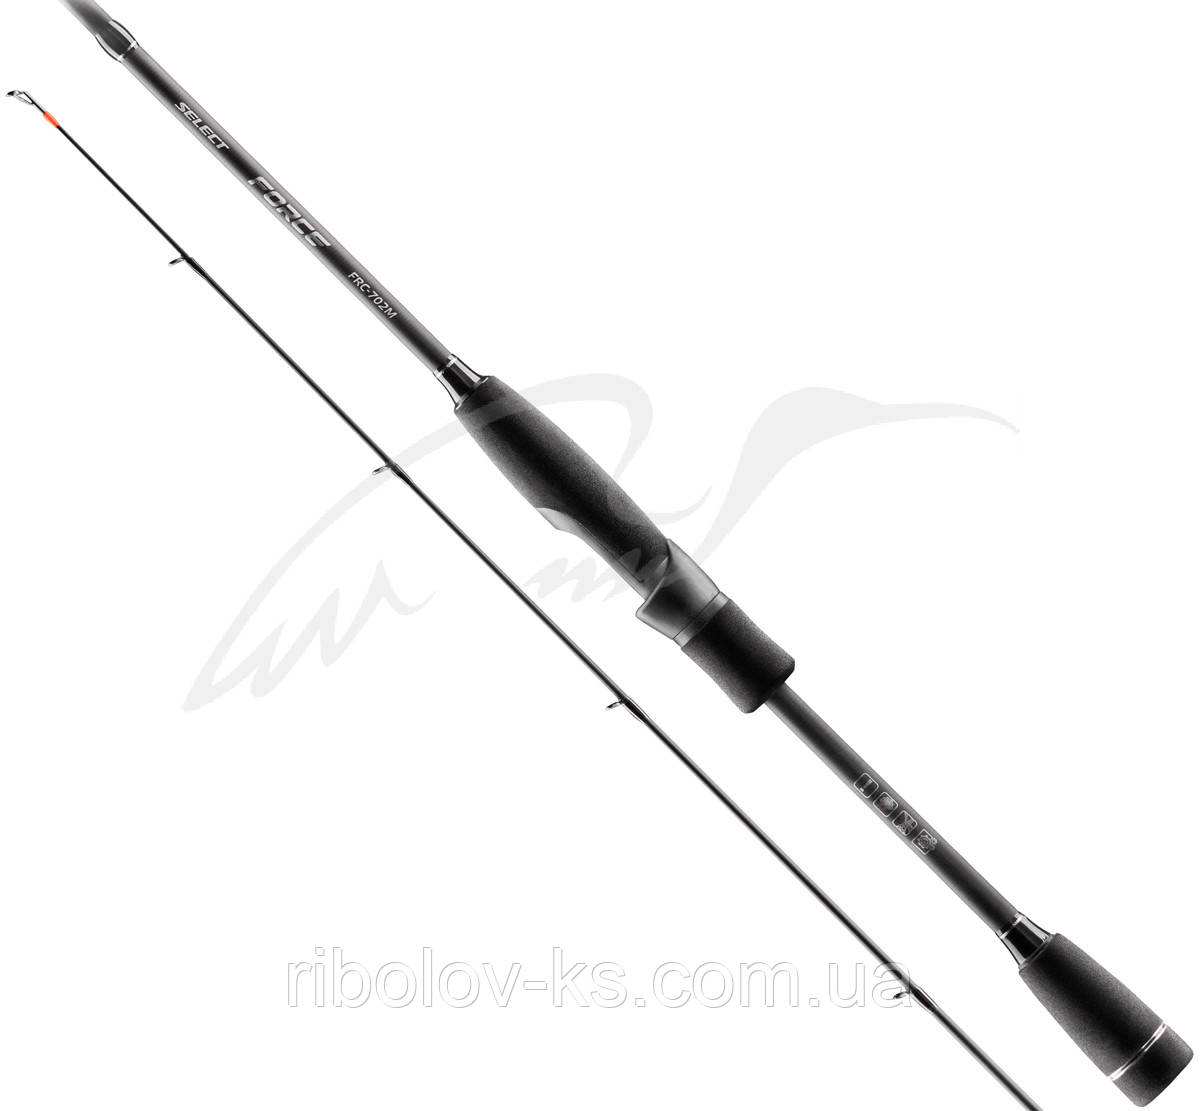 Спиннинг Select Force FRC-702MH 2.13m 10-30g Fast